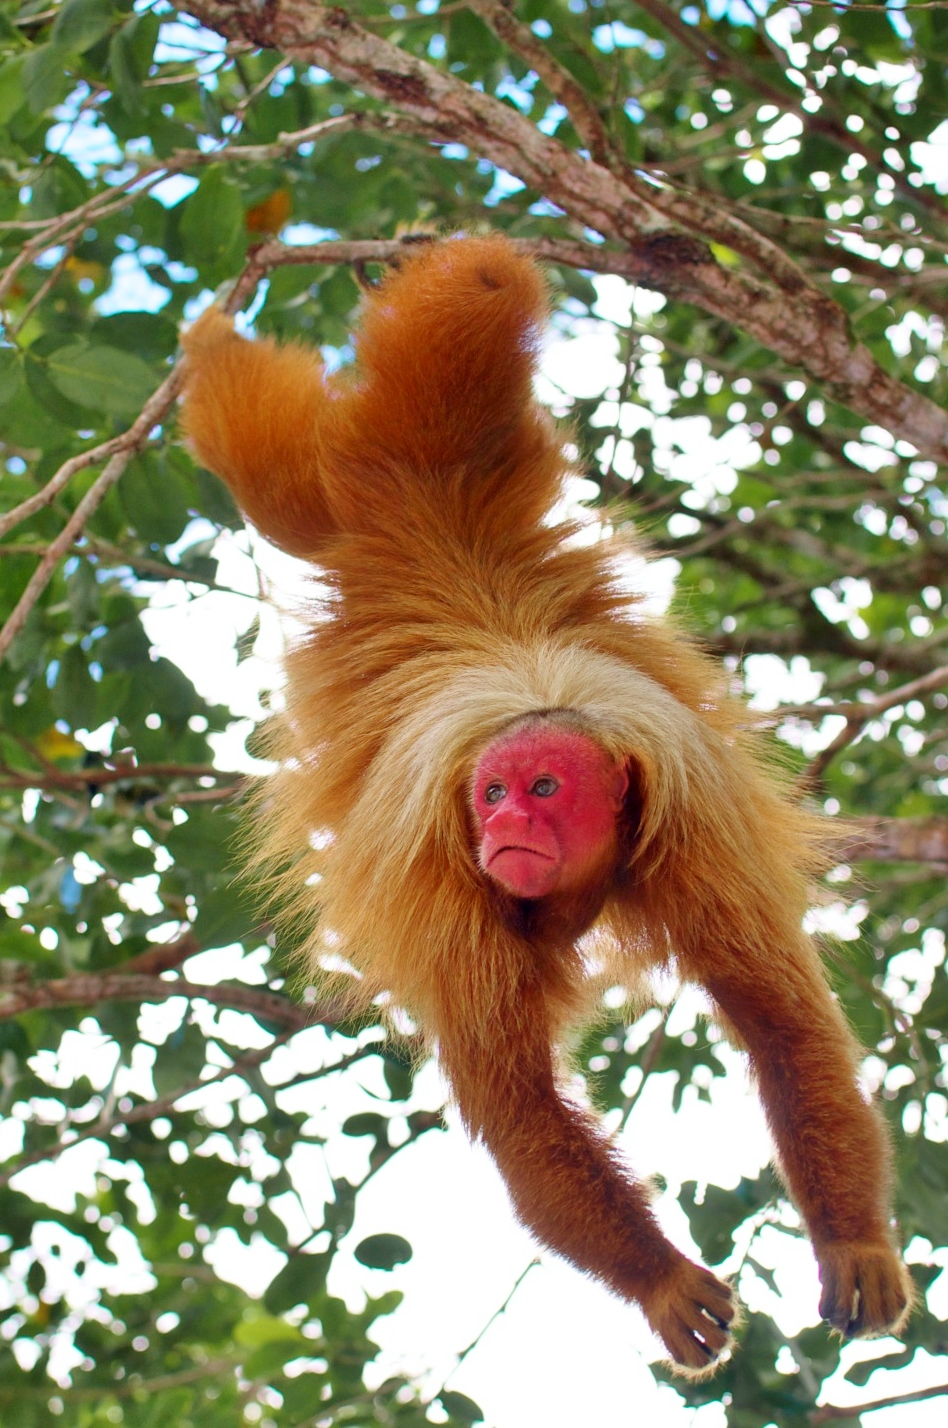 The Red Uakari Monkey, Photo Credit CEDIA, the most amazing monkey I have ever seen!